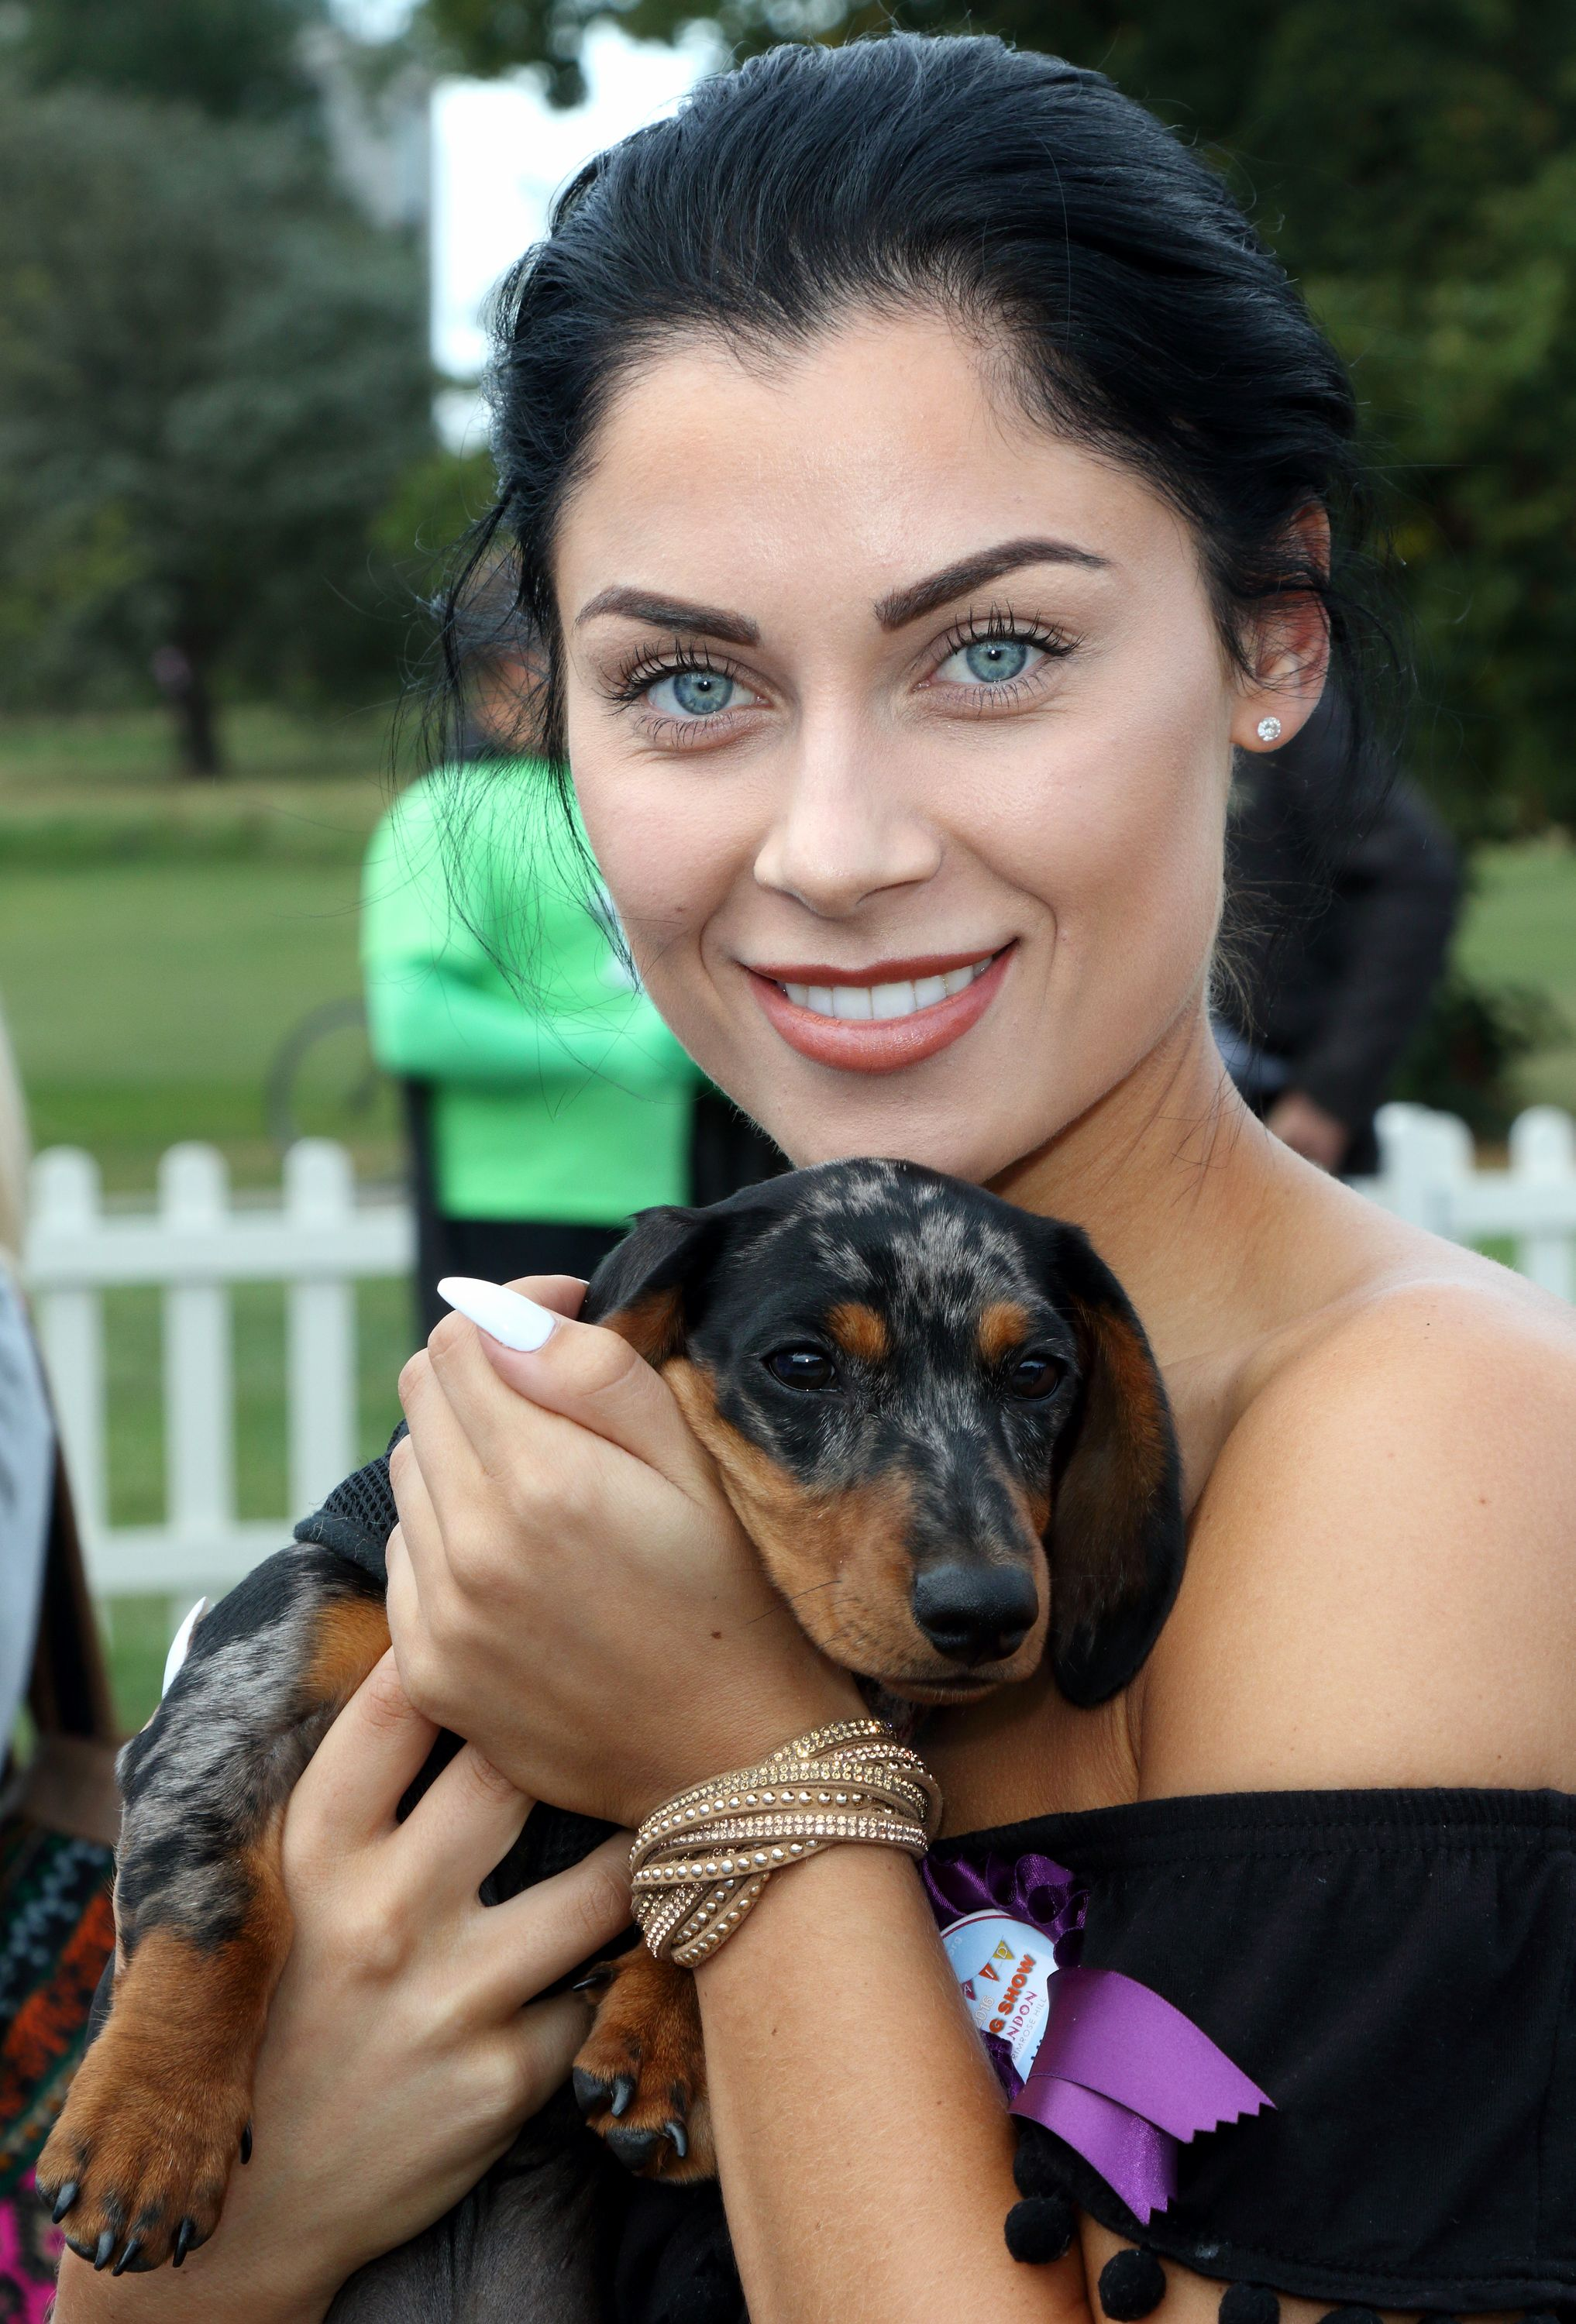 Cally Jane Beech 350 HQ-UHQ Pics